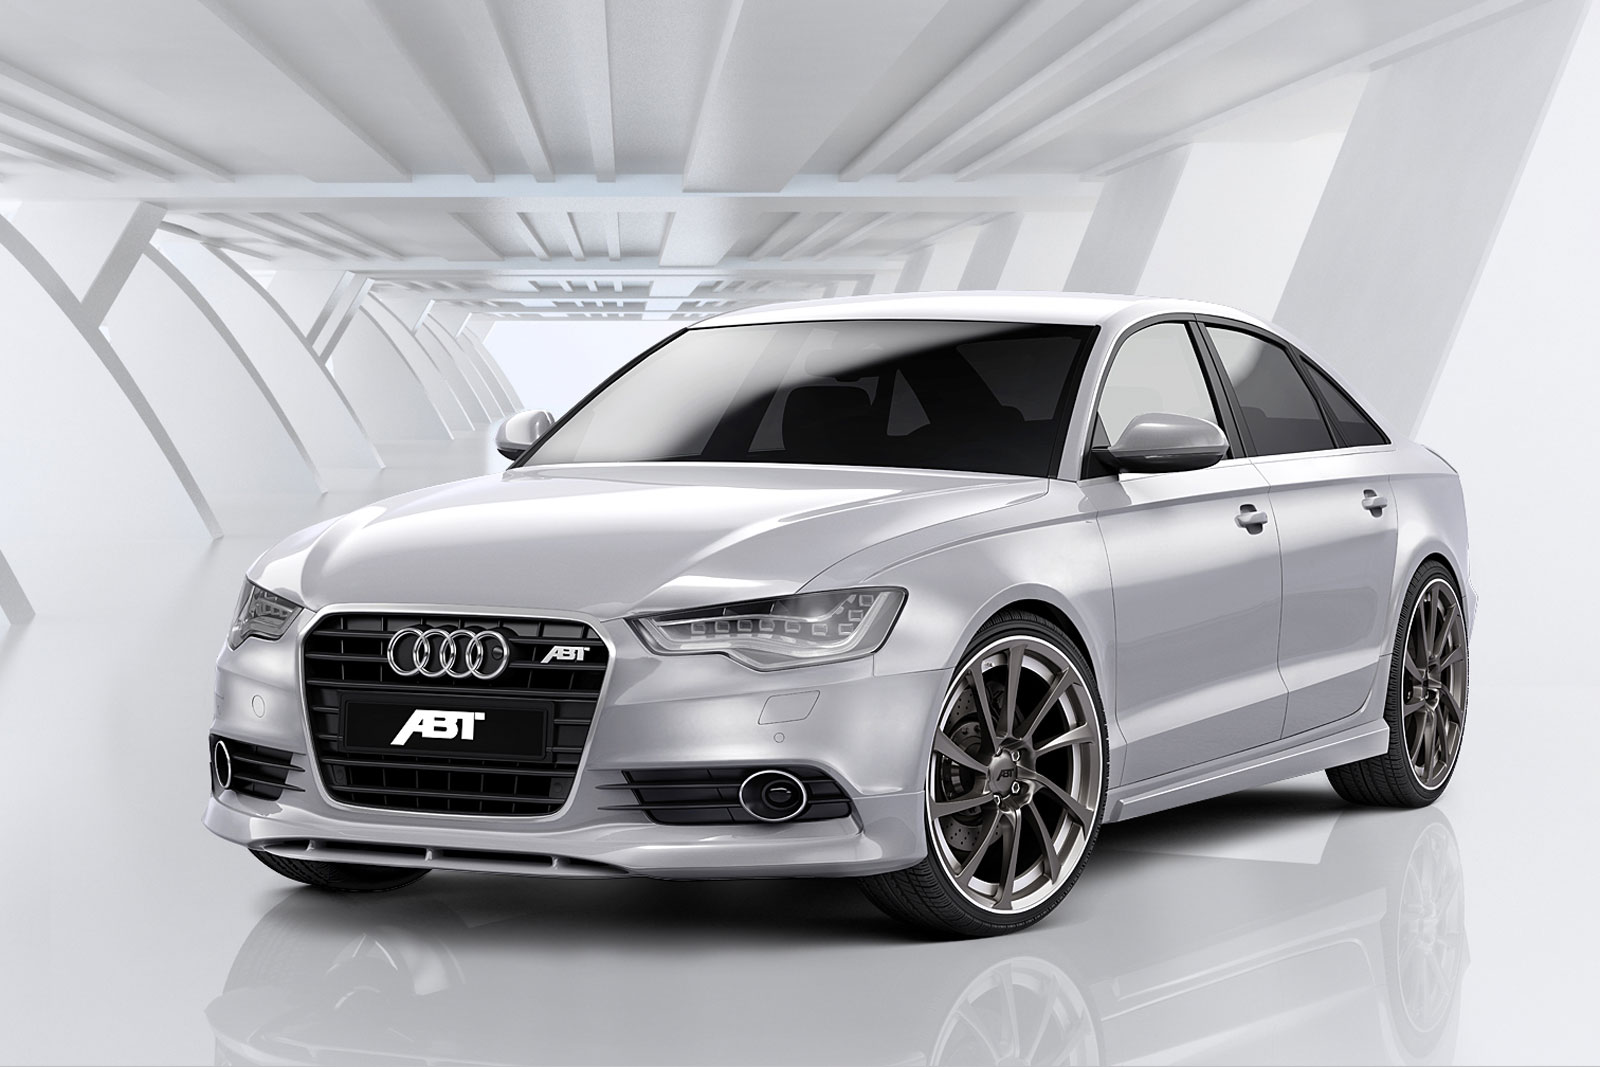 2012 audi a6 tuned by abt sportsline. Black Bedroom Furniture Sets. Home Design Ideas